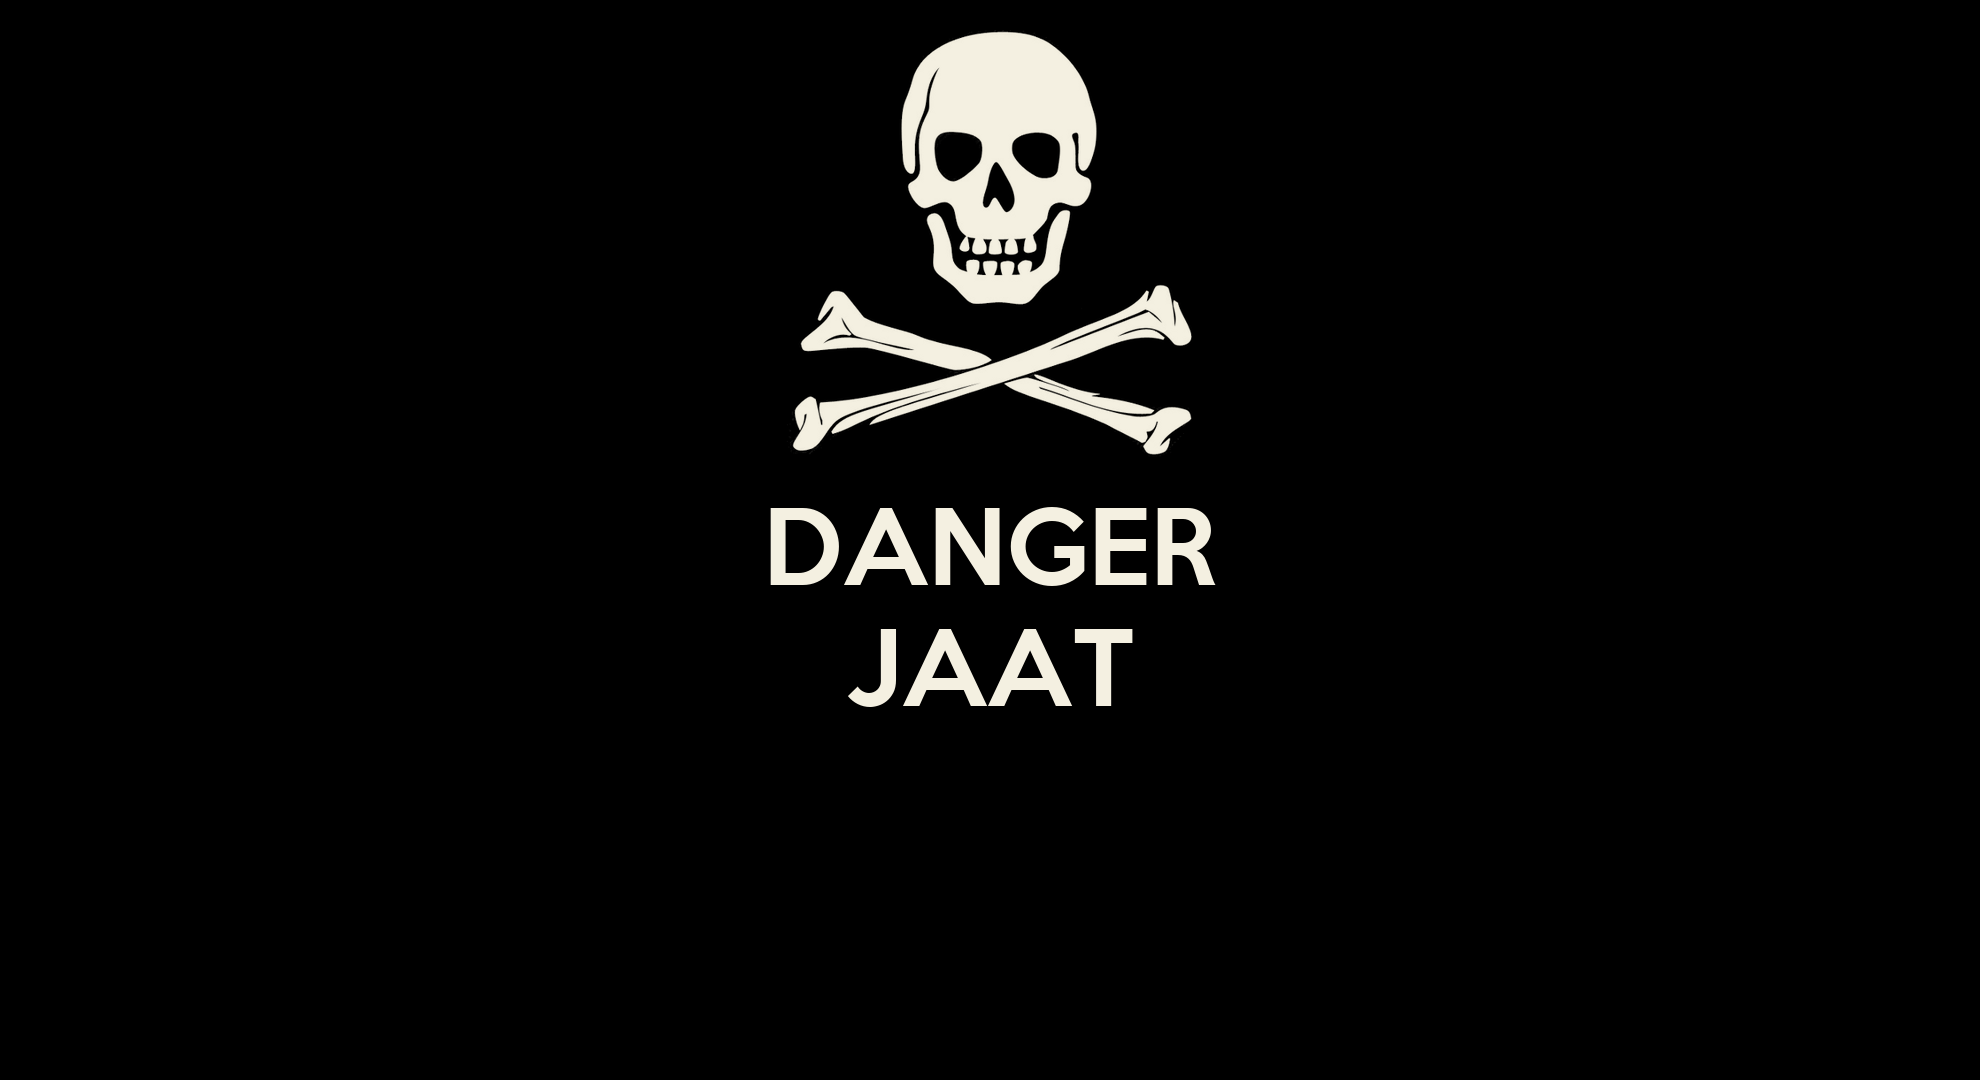 Wallpaper download jat - Jaat Logo Wallpaper Keywords Suggestions Jaat Logo Wallpaper